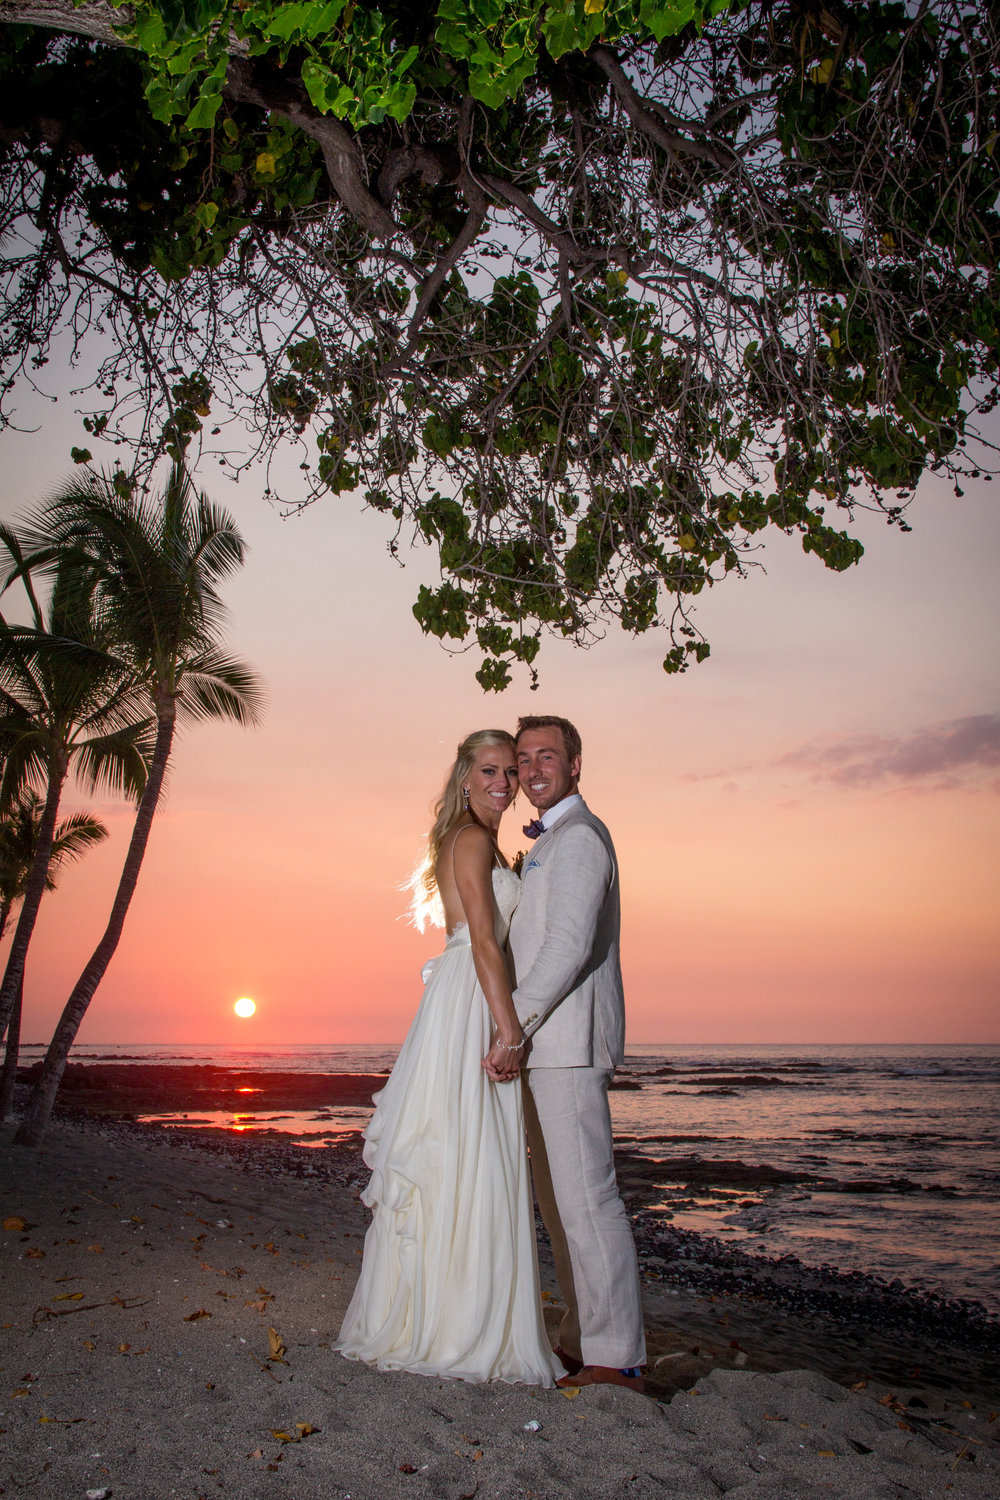 big island hawaii mauna lani resort wedding © kelilina photography 20160131180954-1.jpg